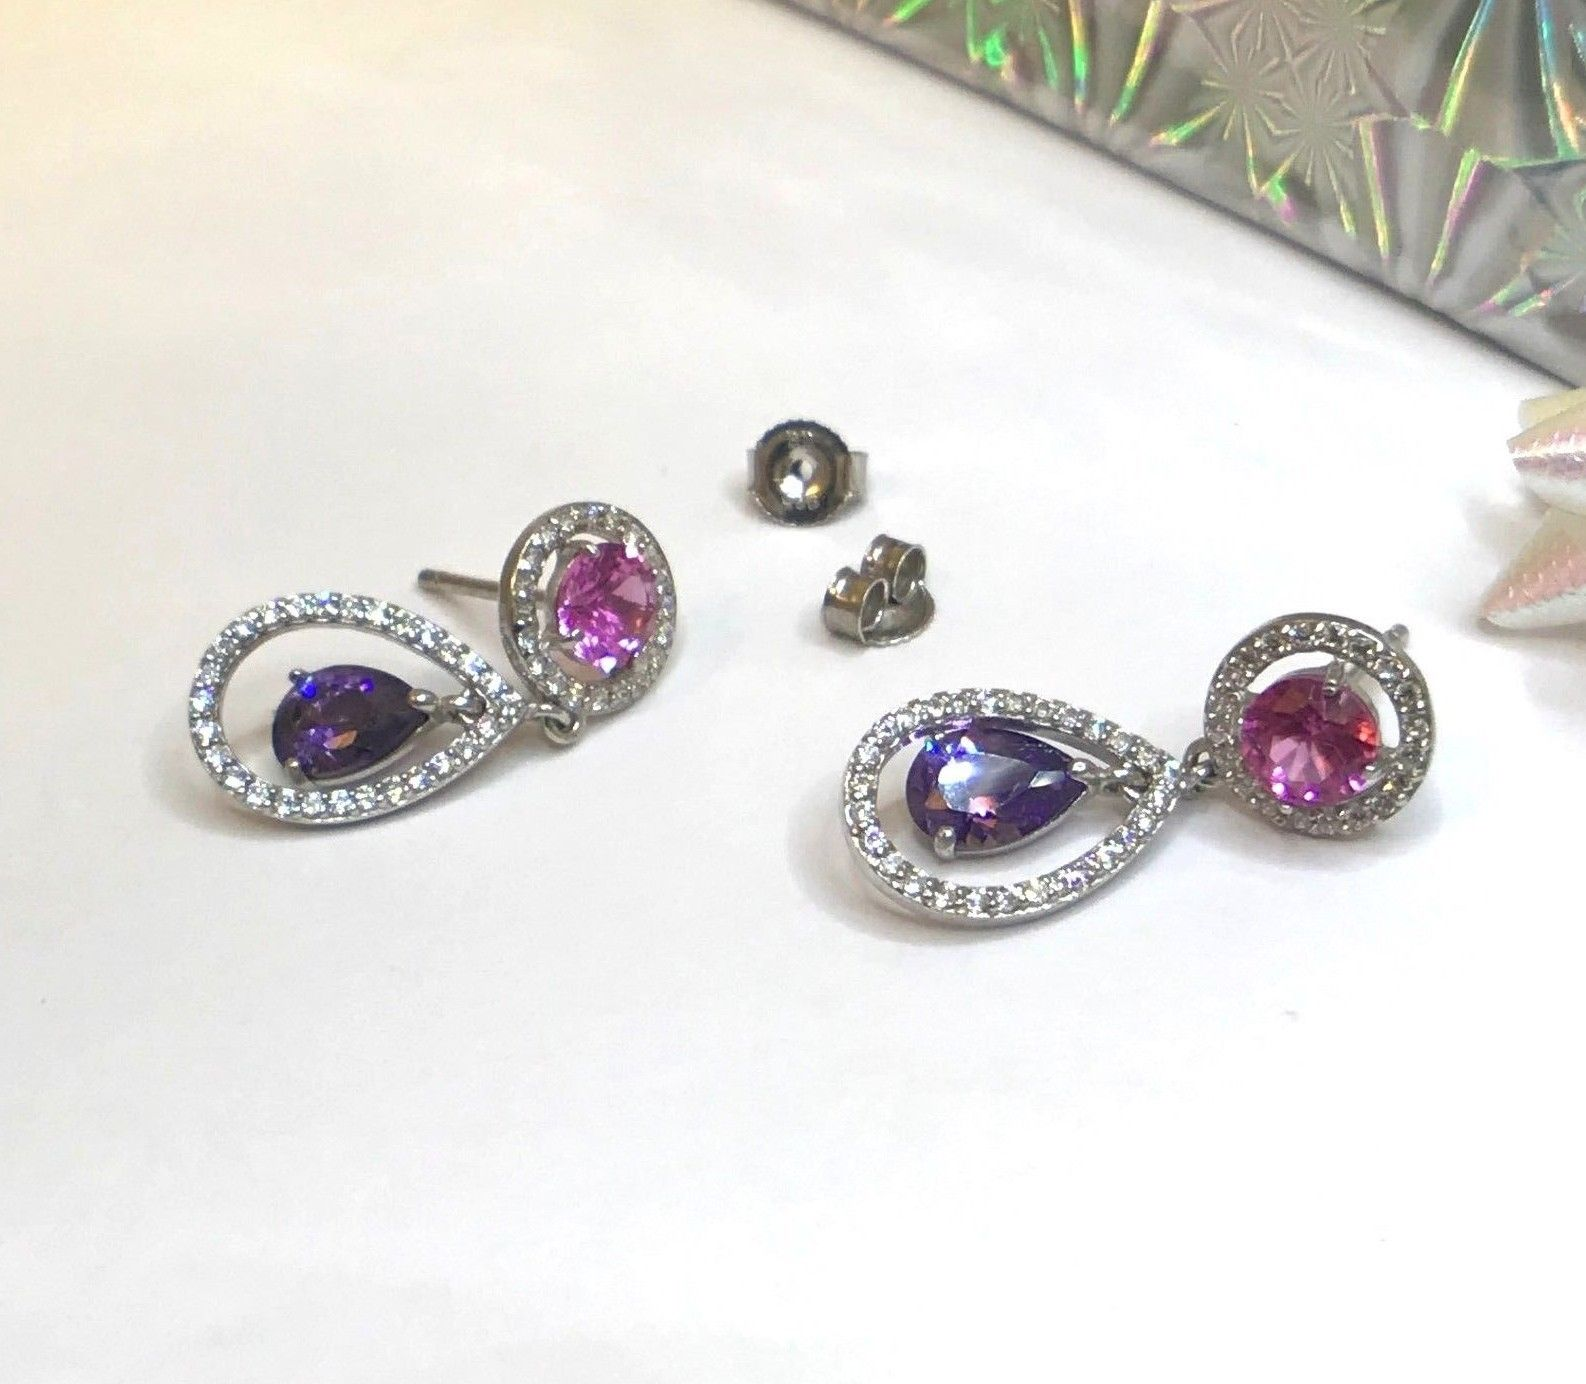 Women 925 Sterling Silver Jewelry Tourmaline Elegant Stud Earrings Fashion Gift